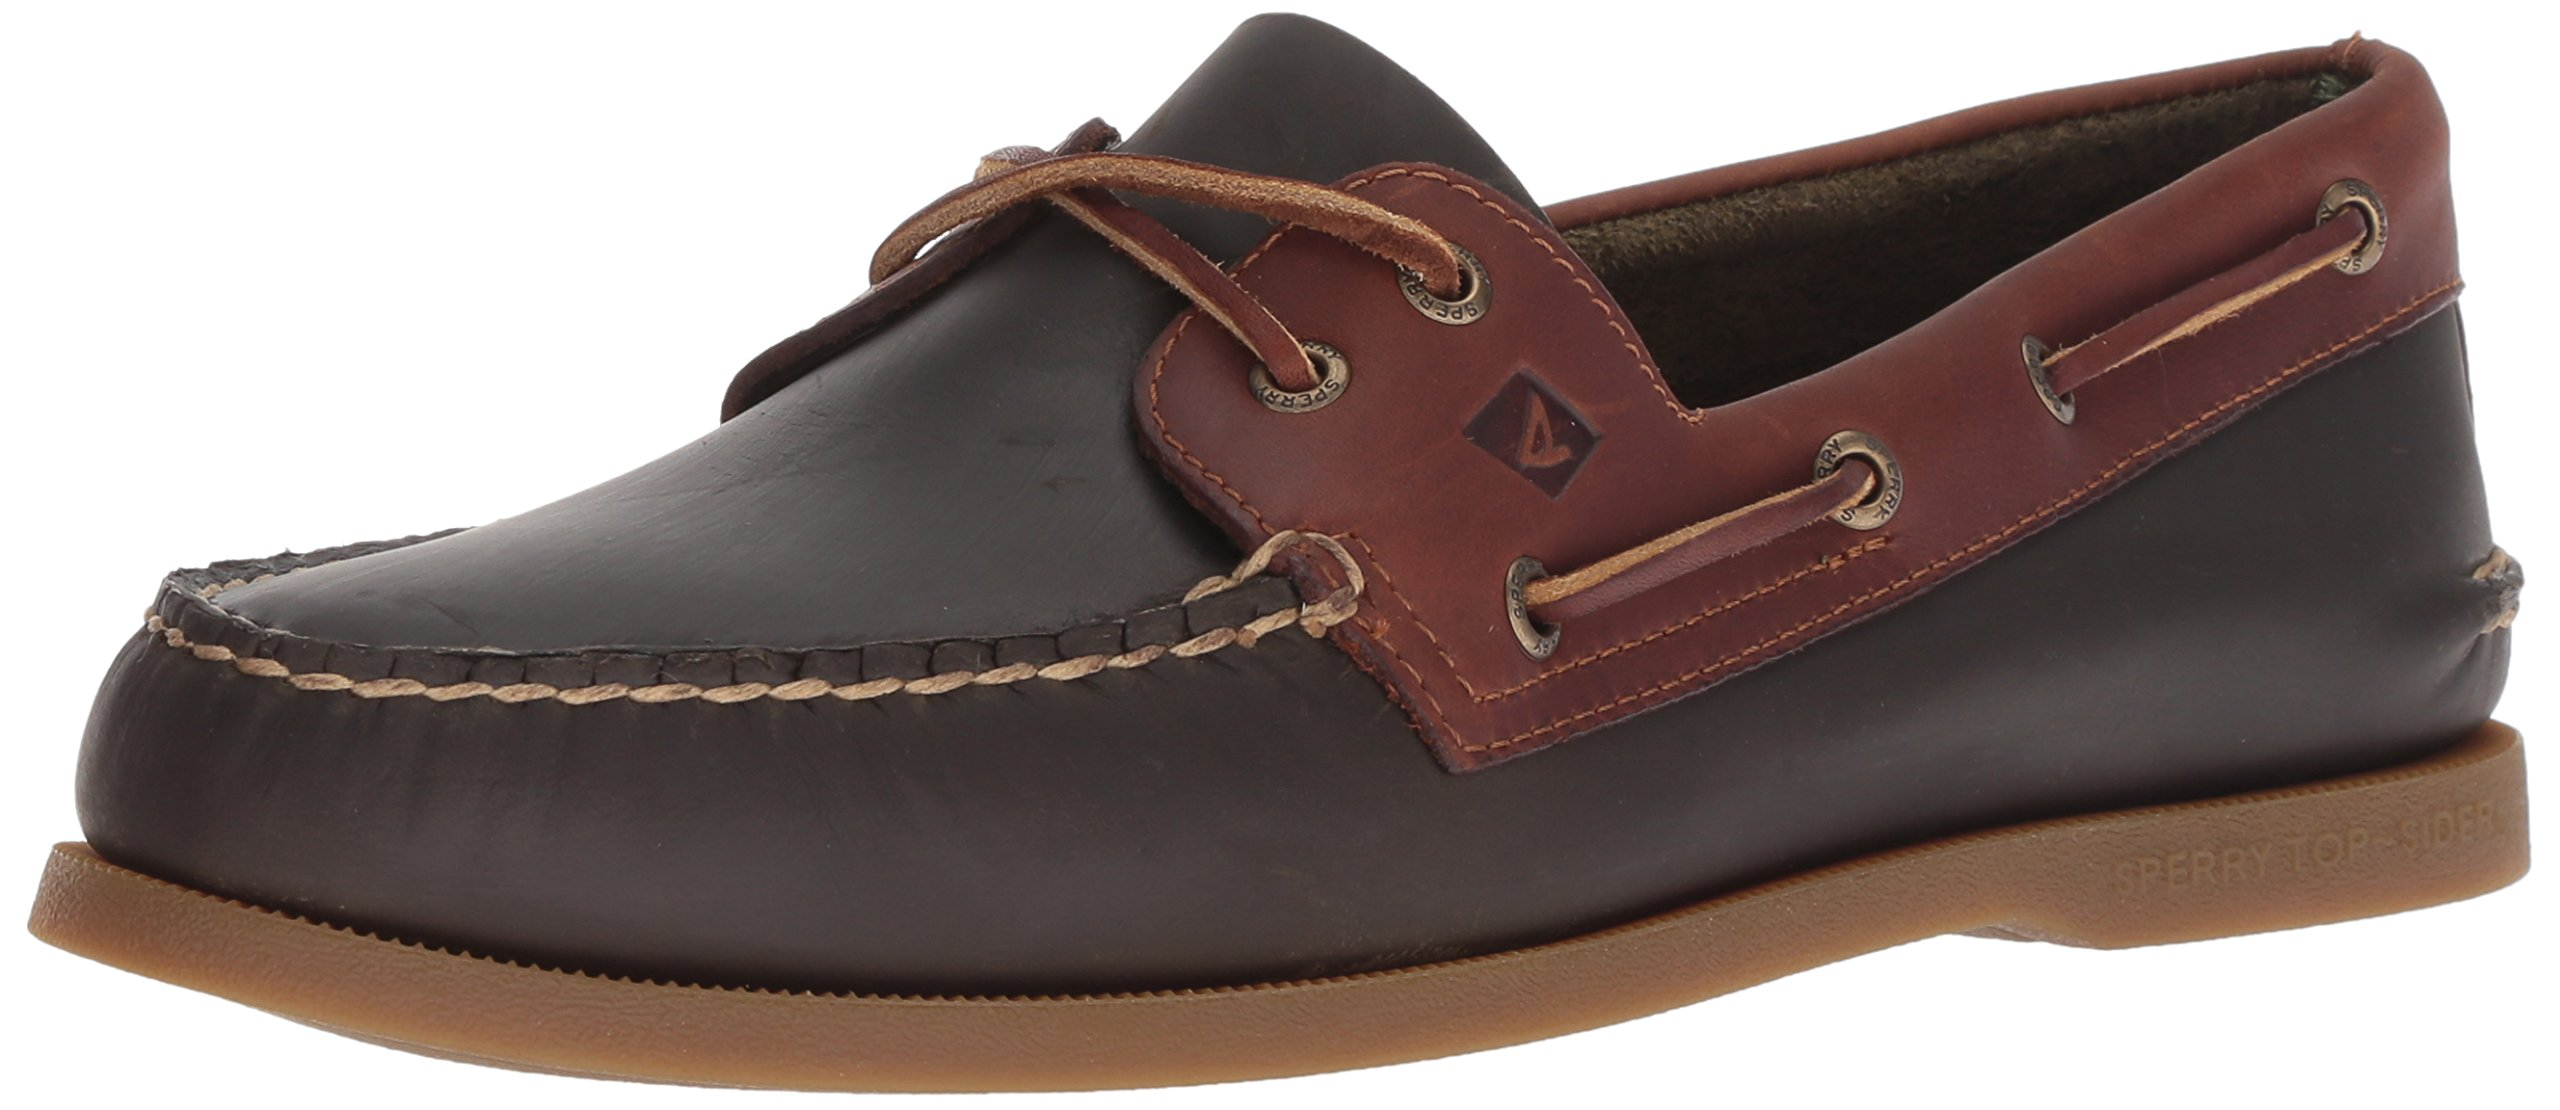 Sperry Mens Original Richtown Boat Shoe - Olive/tan - 9 M